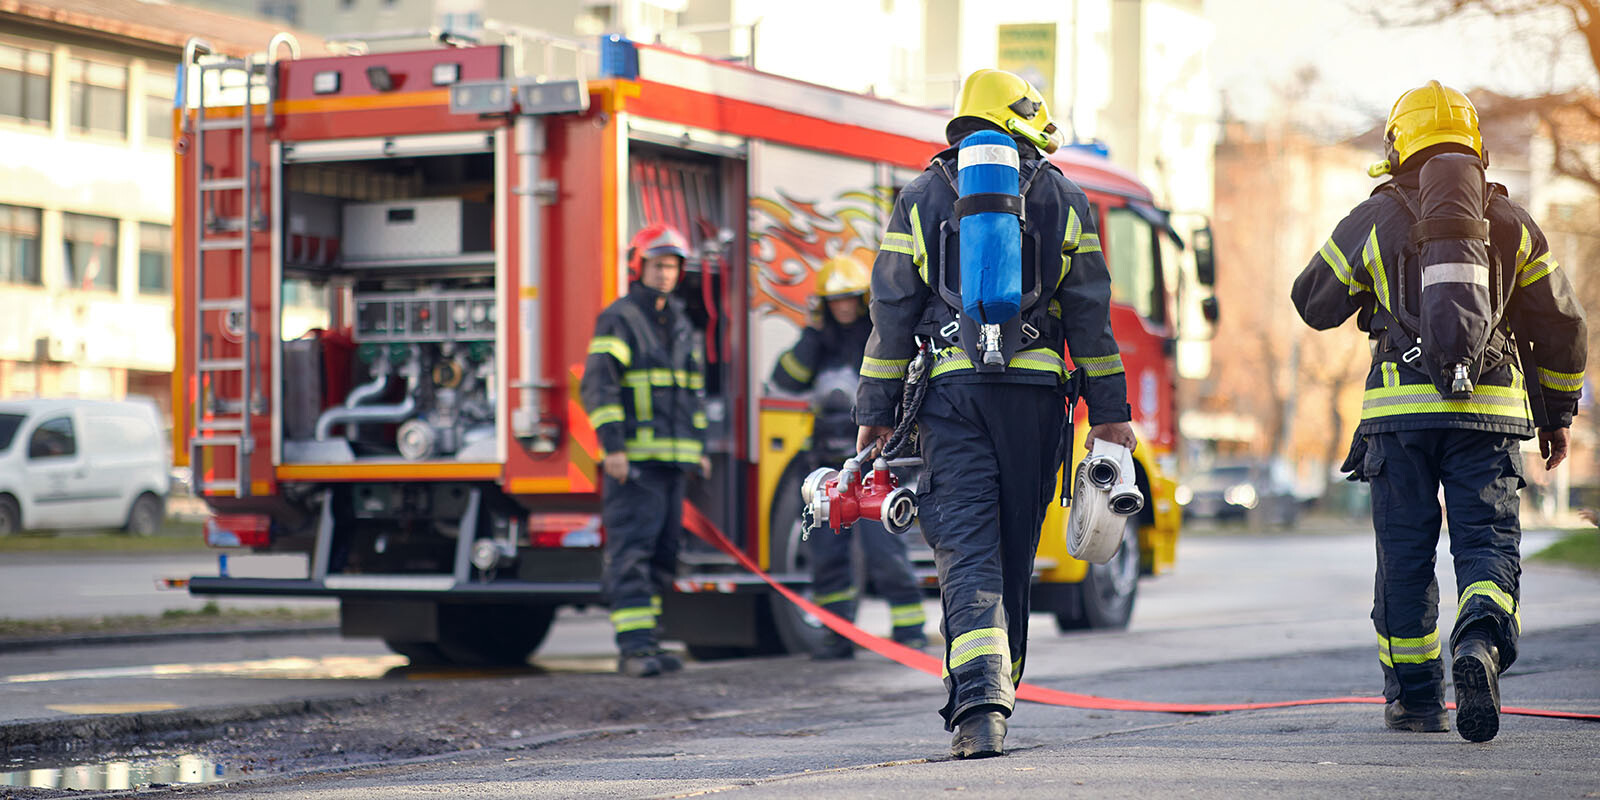 firefighters successfully completed the dangerous firefighting